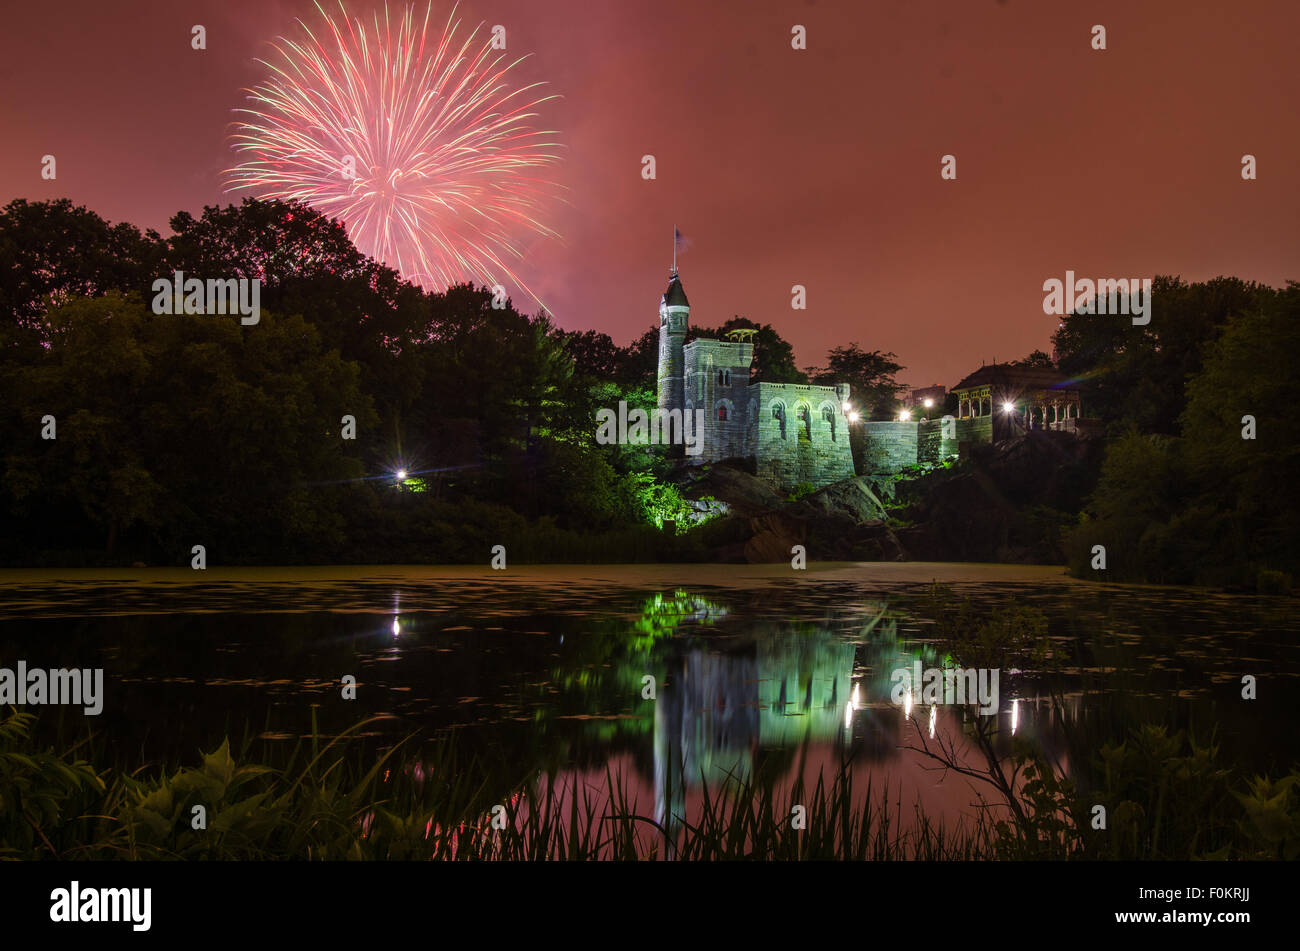 Fireworks explode over Belvedere Castle in Central Park in celebration of the New York Philharmonic's 50th anniversary. - Stock Image